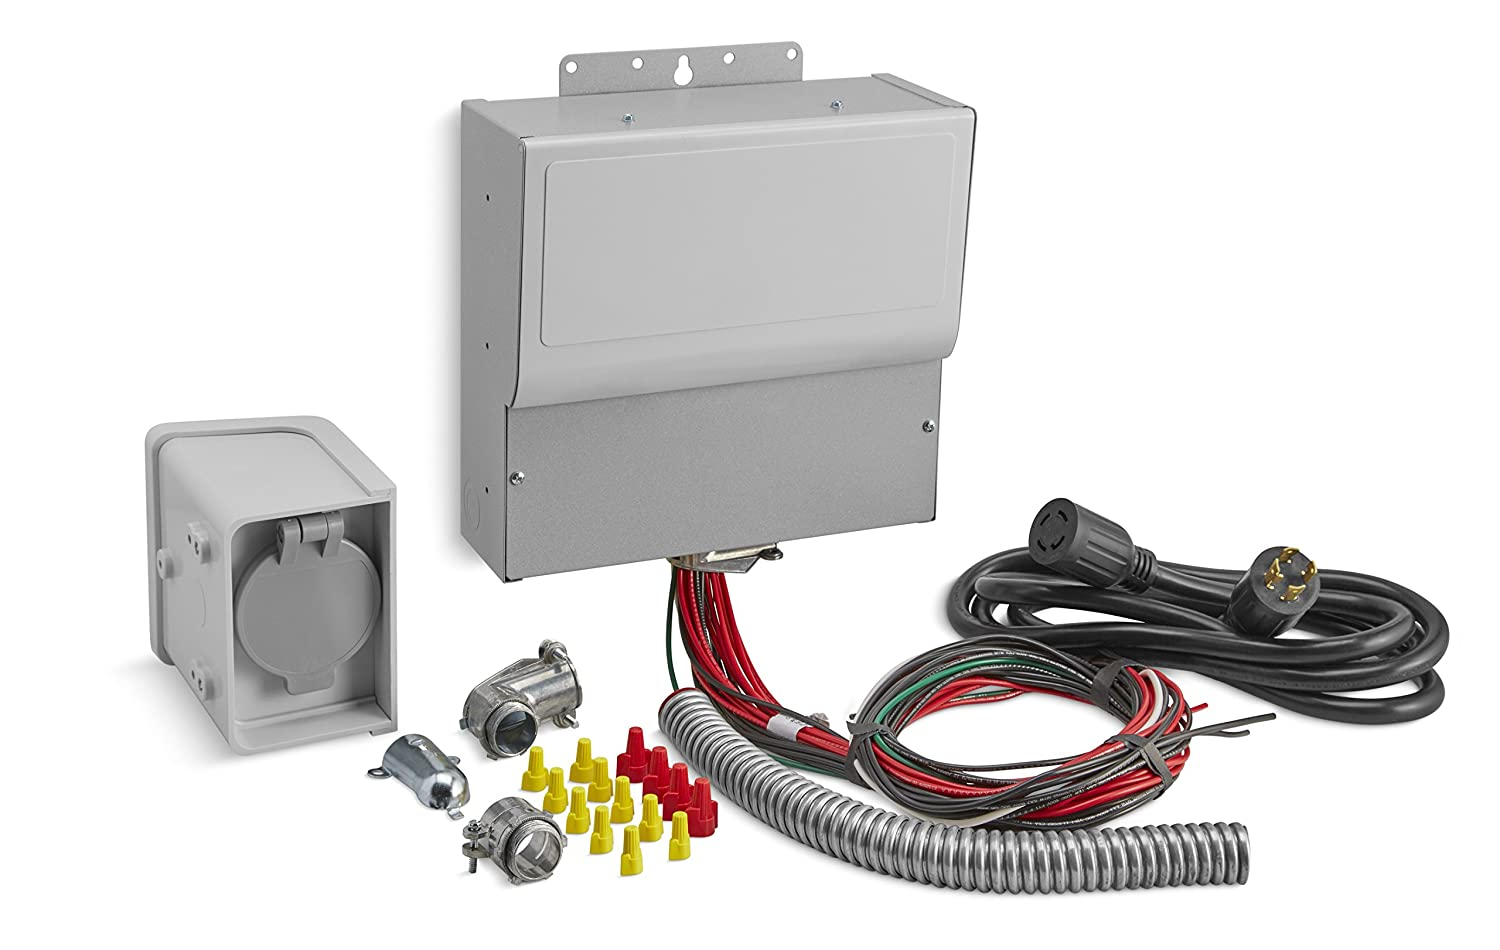 Kohler 37 755 07-S 10-Circuit Manual Transfer Switch Kit for Portable Generators